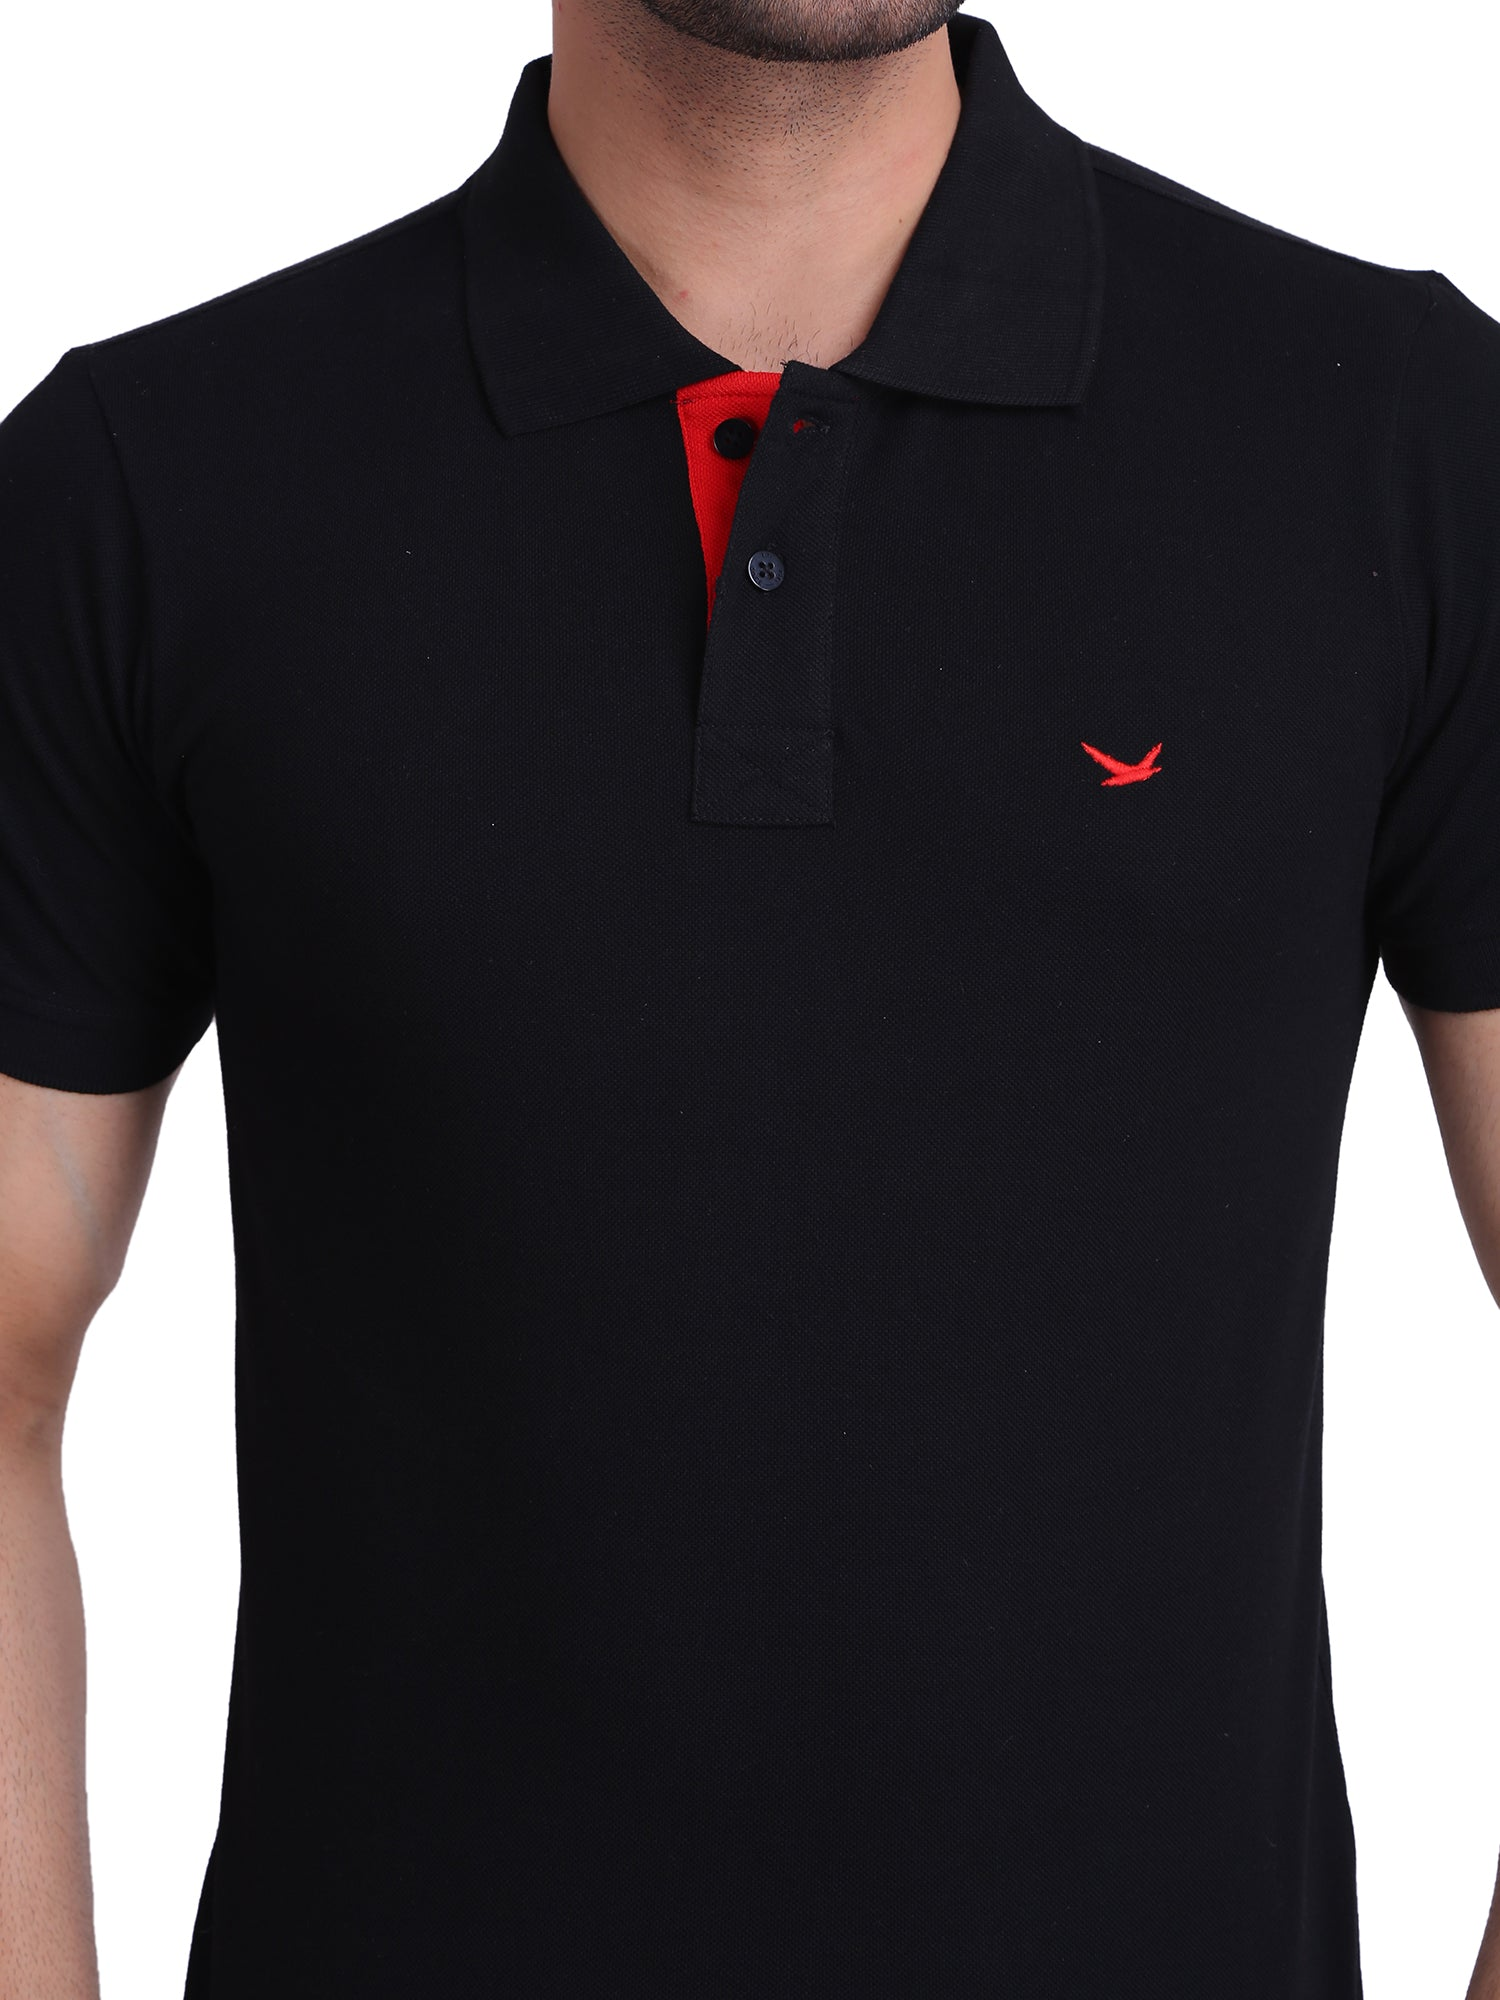 Hiflyers Black Polo T-Shirt